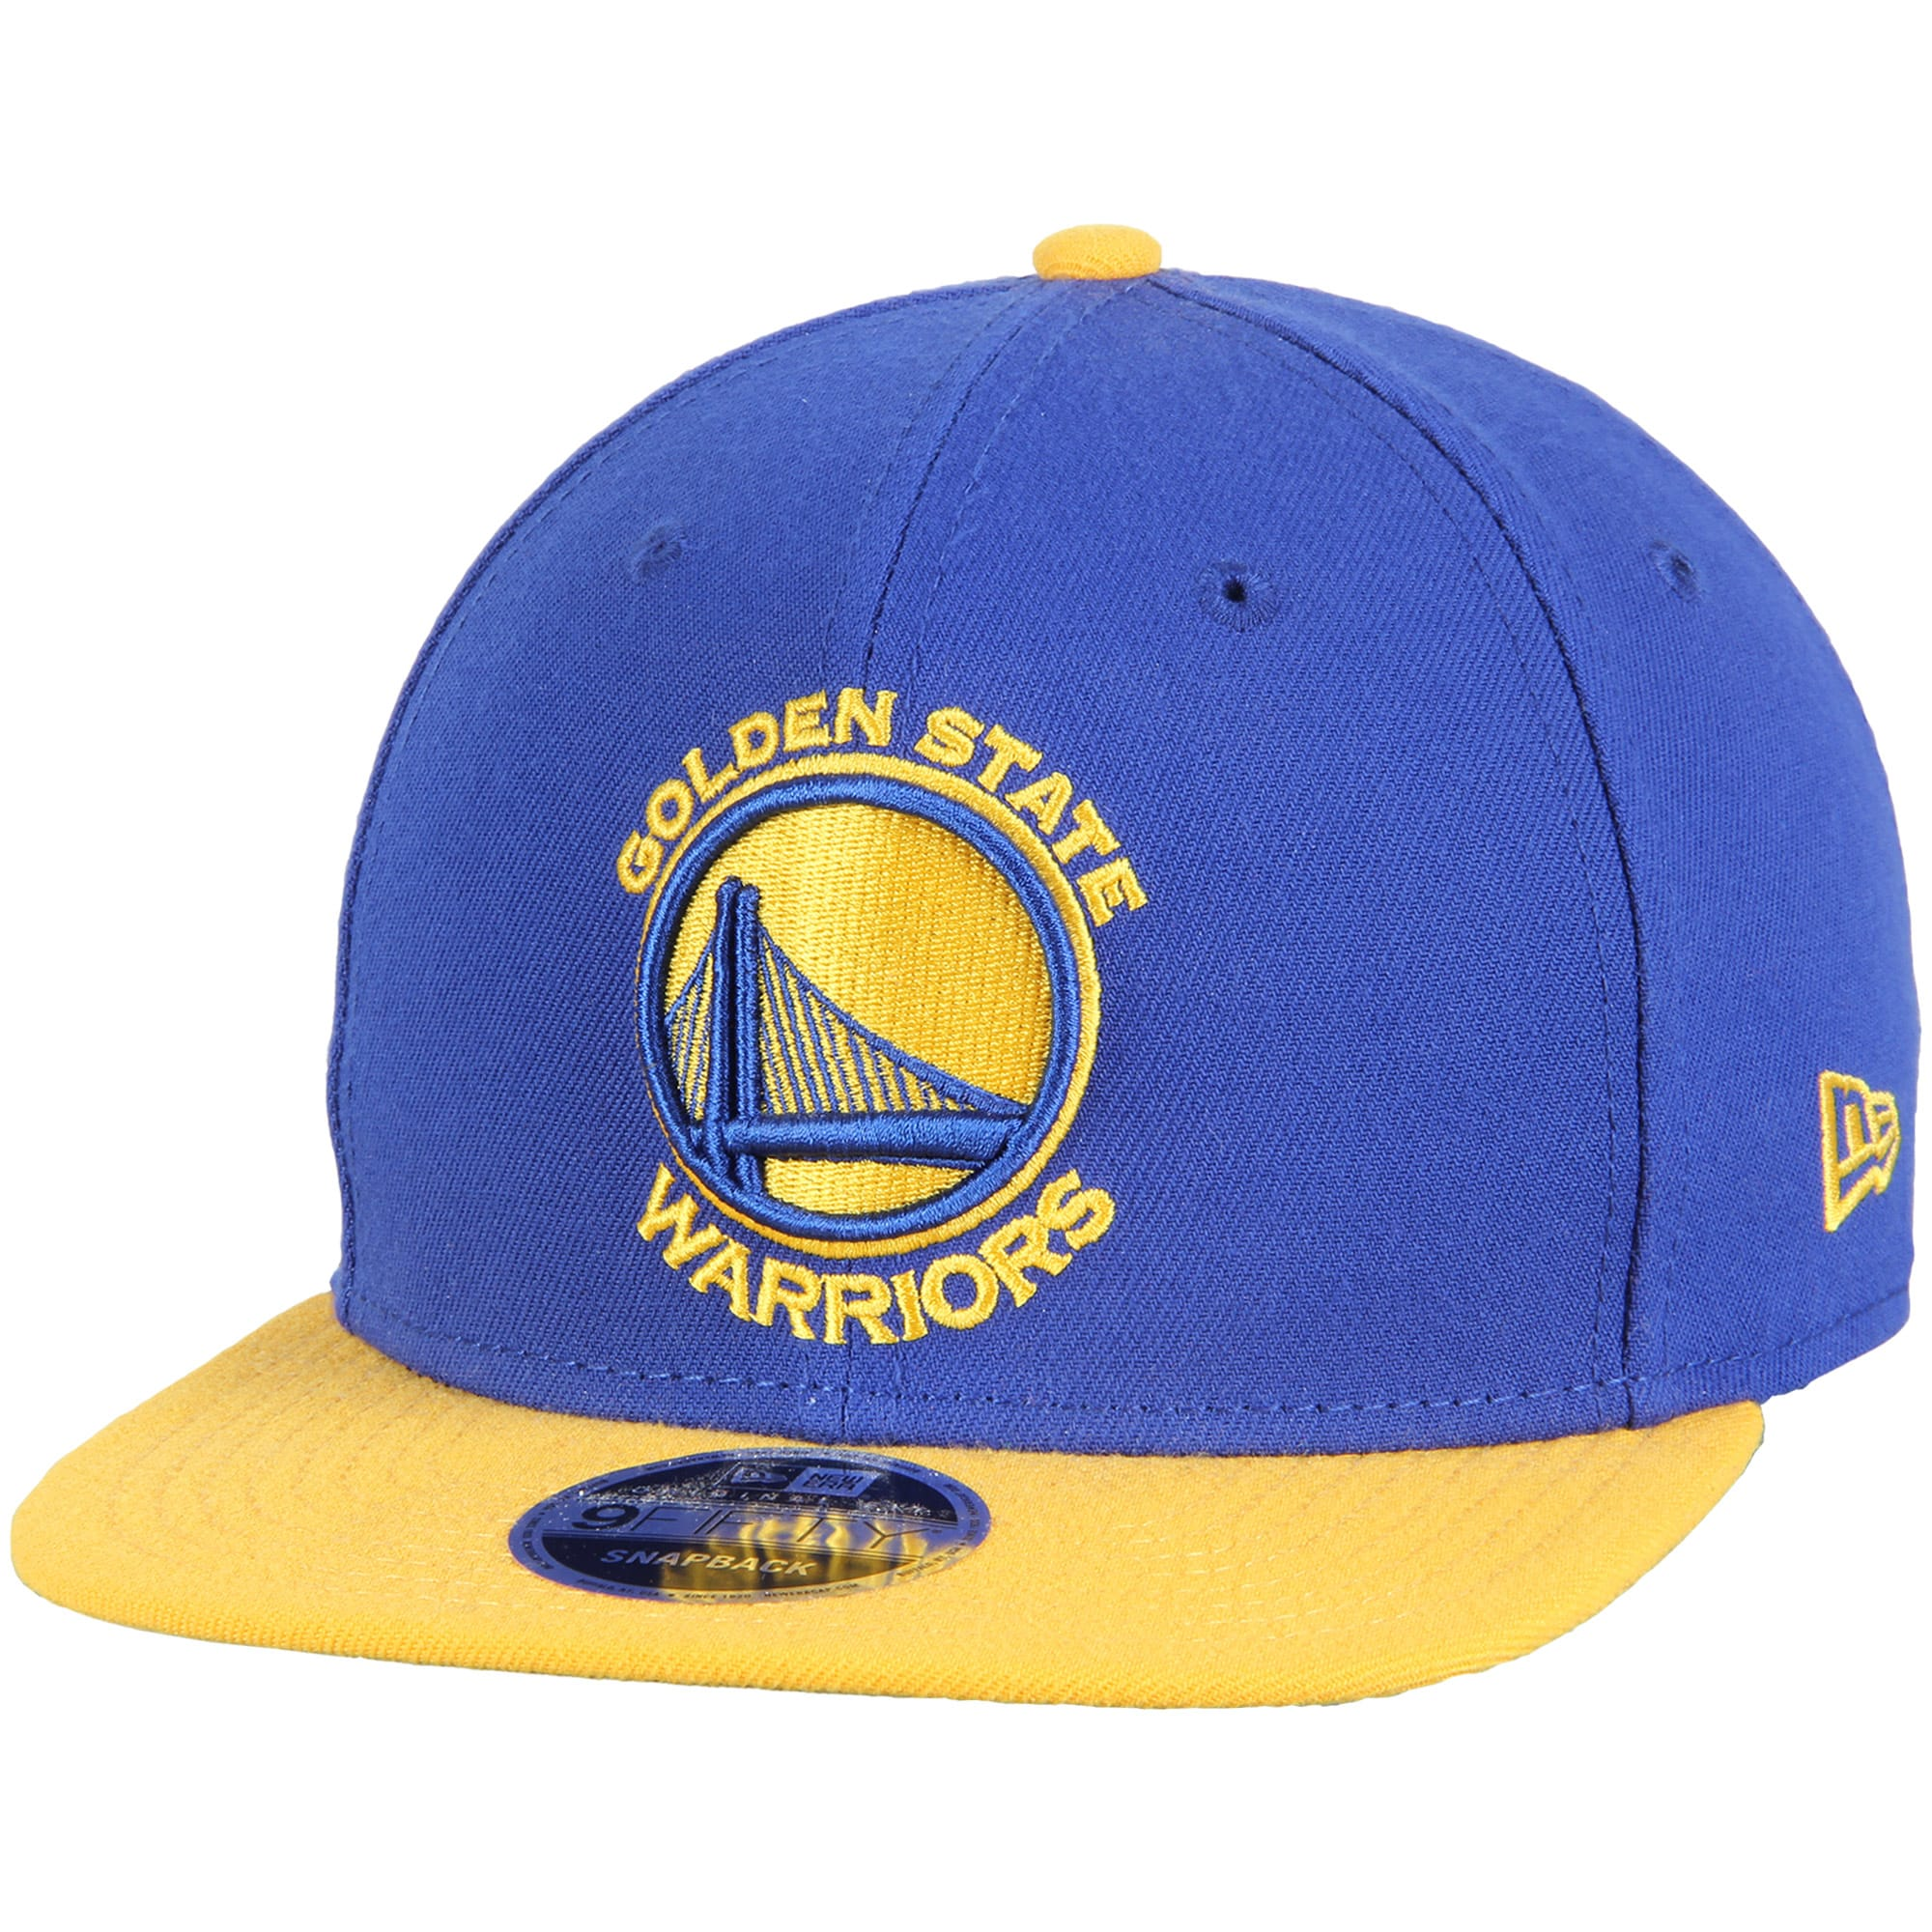 Golden State Warriors New Era 2-Tone Original Fit 9FIFTY Adjustable Snapback Hat - Royal/Gold